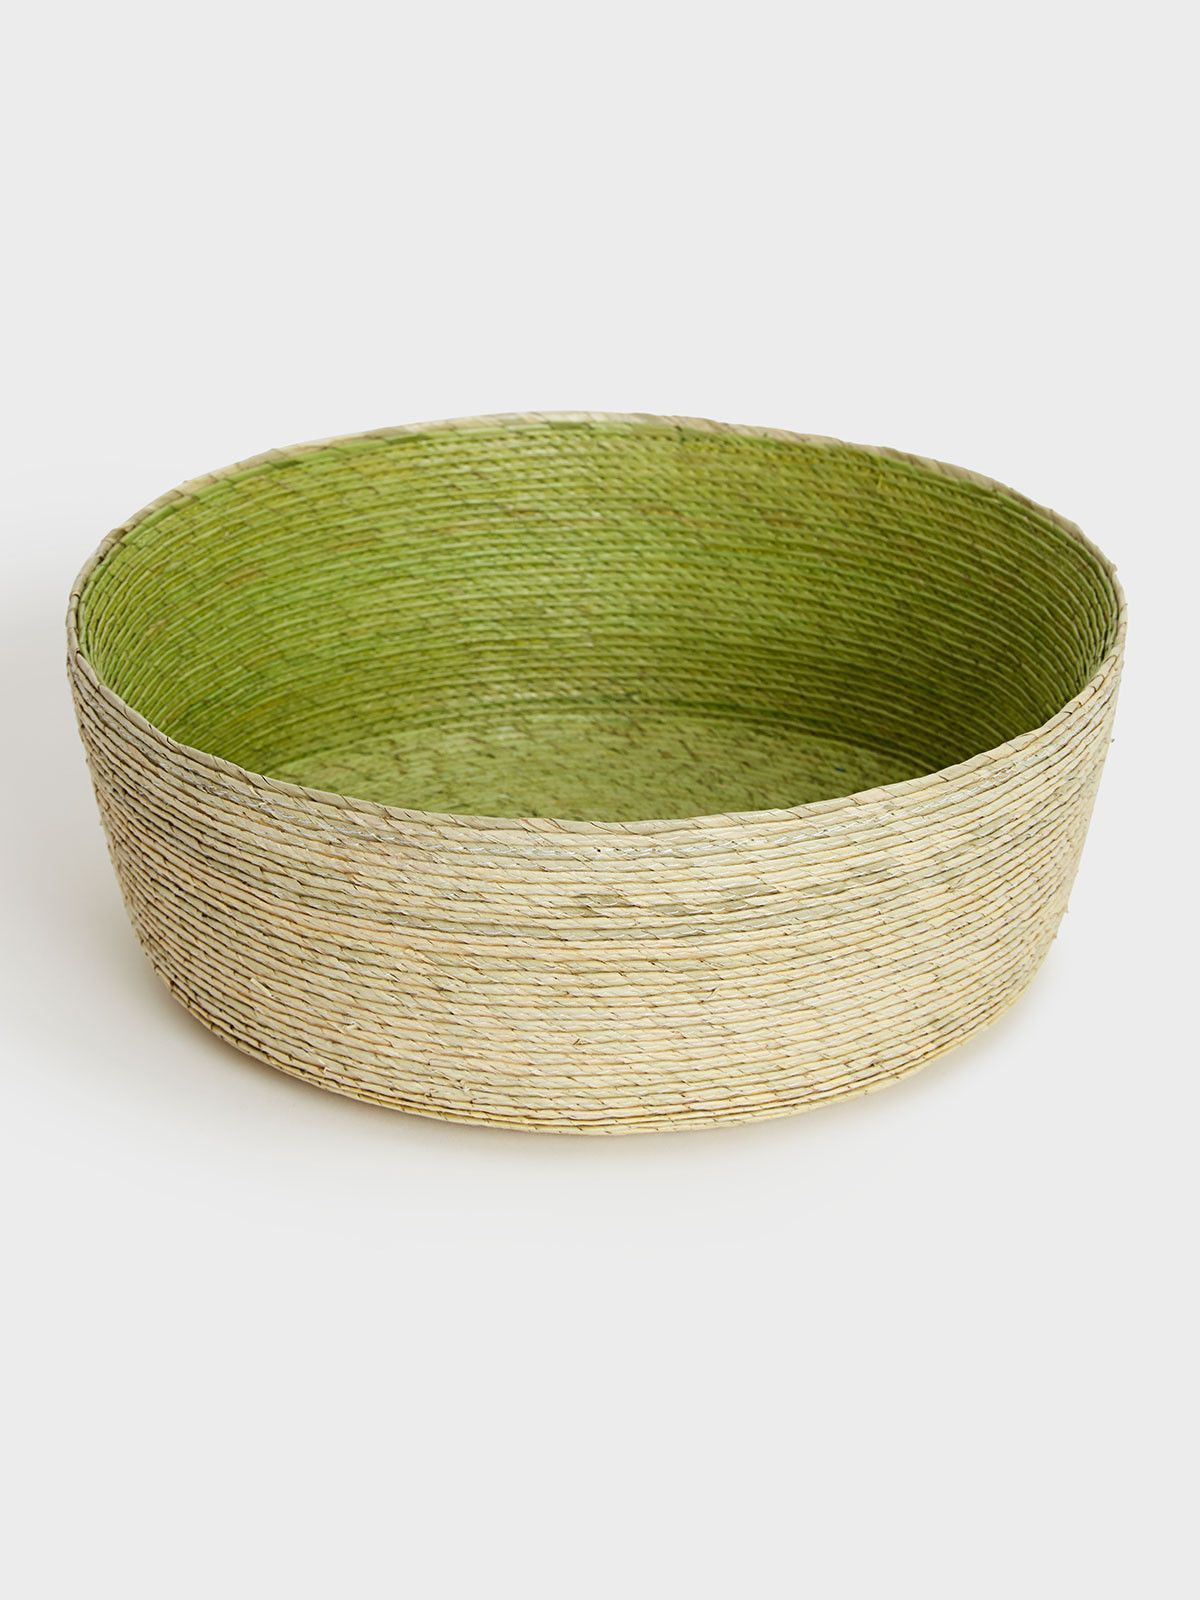 Green Palm Leaf Basket | Palm, Leaves and Products